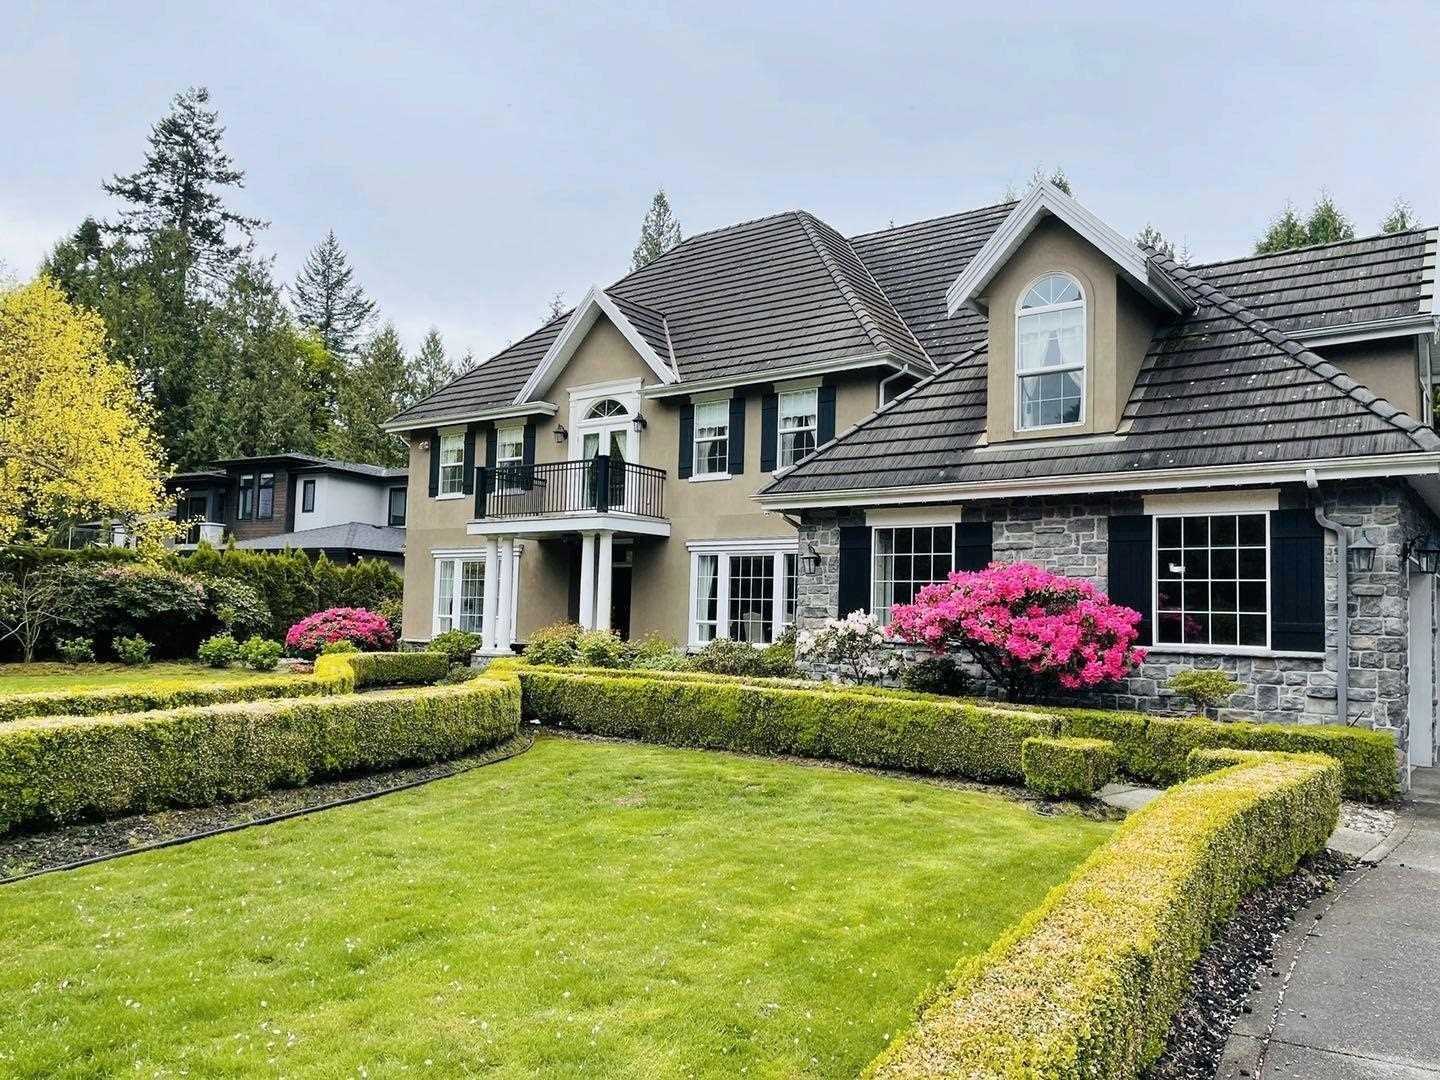 Main Photo: 3139 136 Street in Surrey: Elgin Chantrell House for sale (South Surrey White Rock)  : MLS®# R2596692